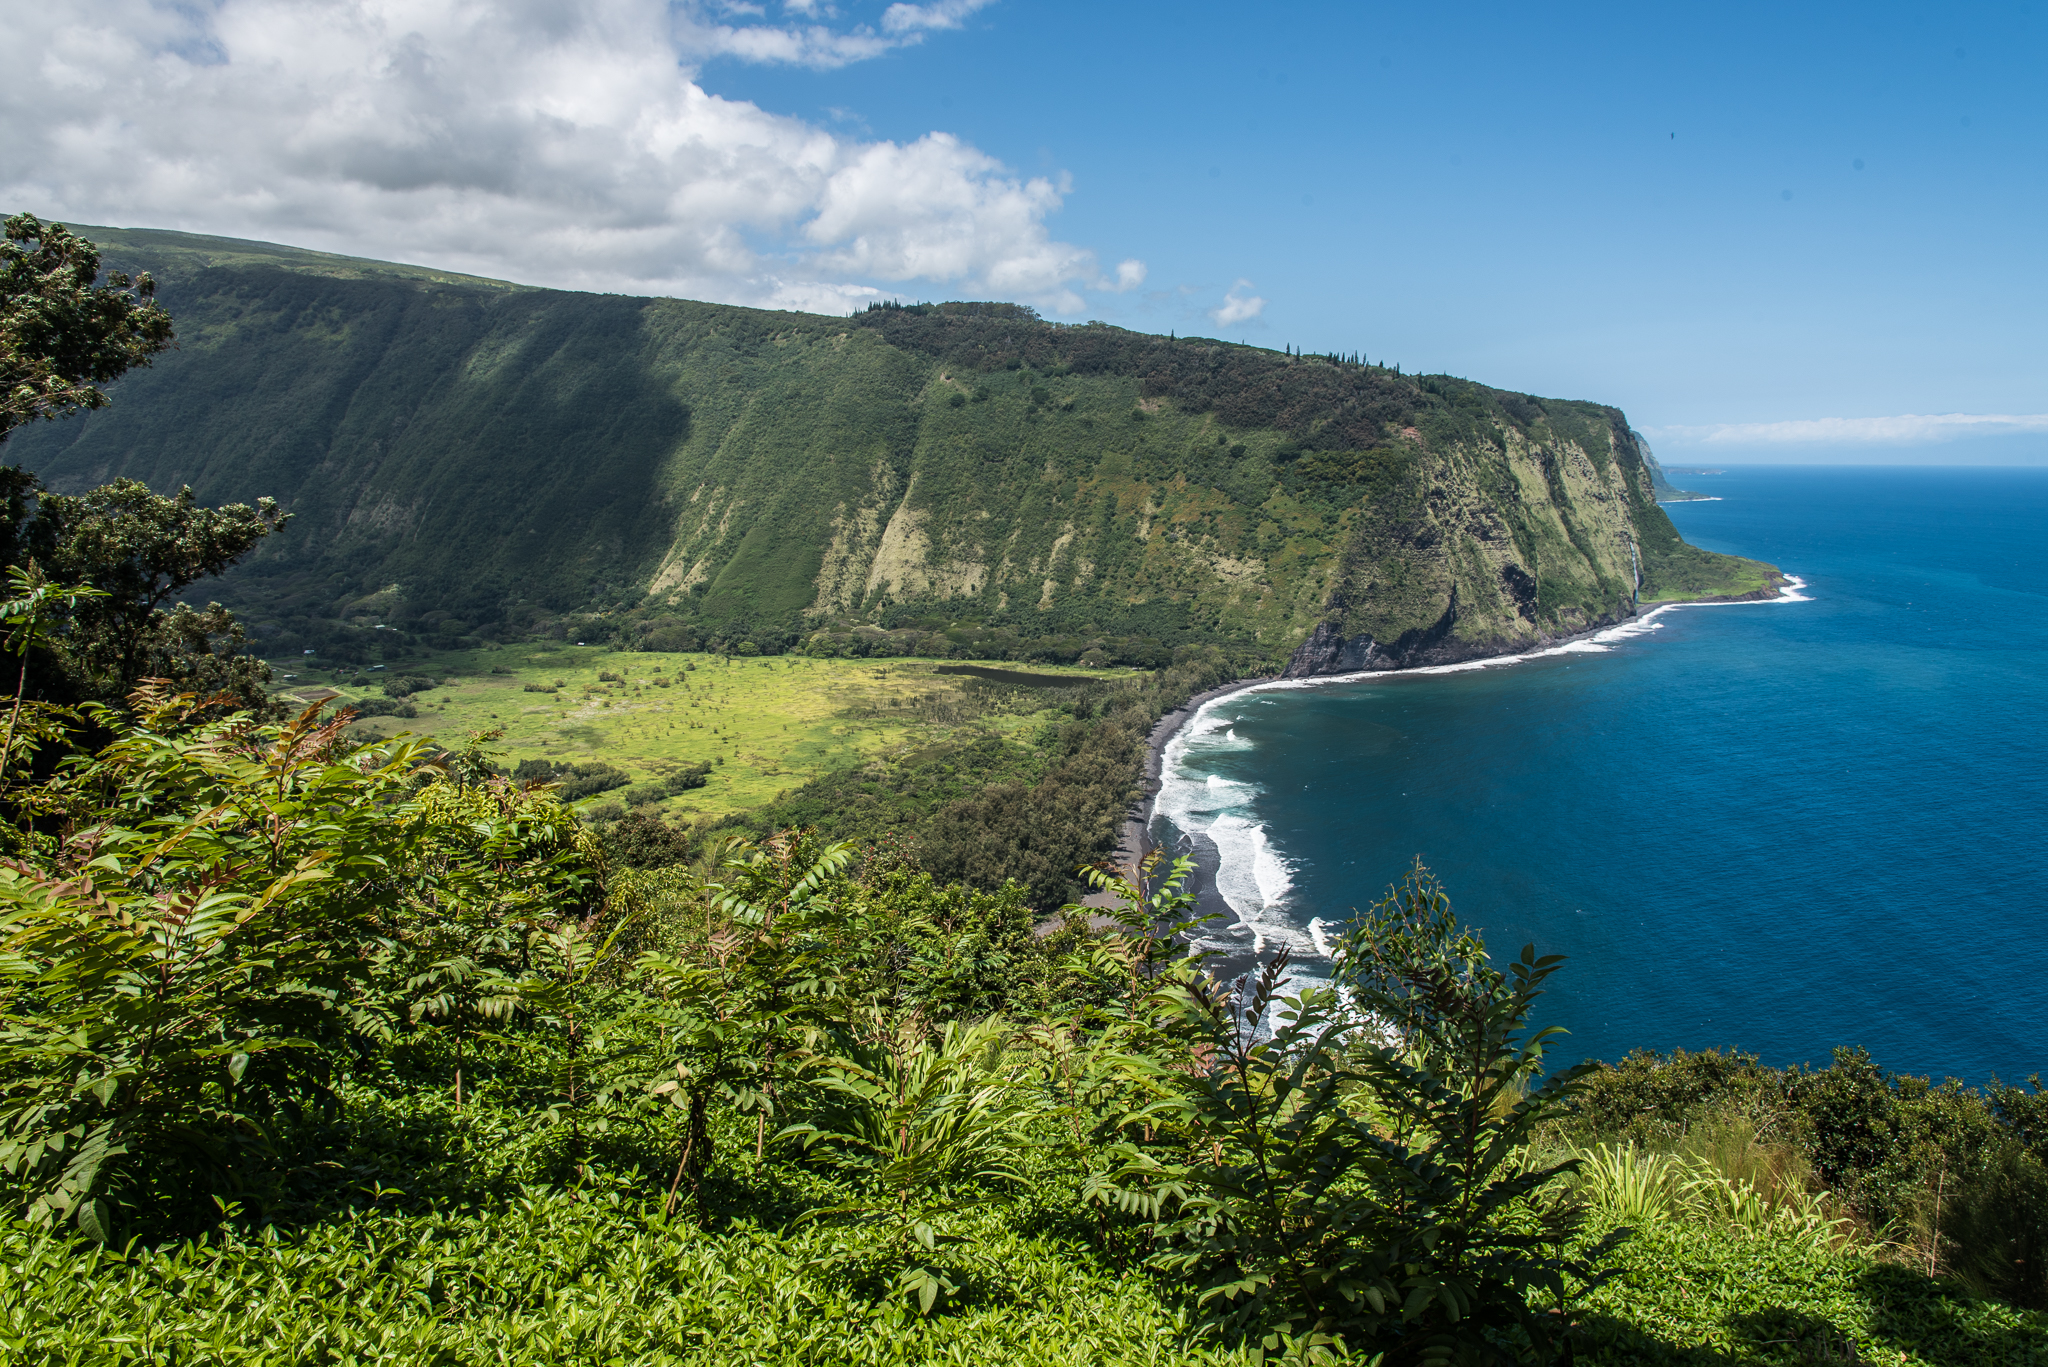 Waipio Valley as seen from the Lookout | Photo by  @mikecloom